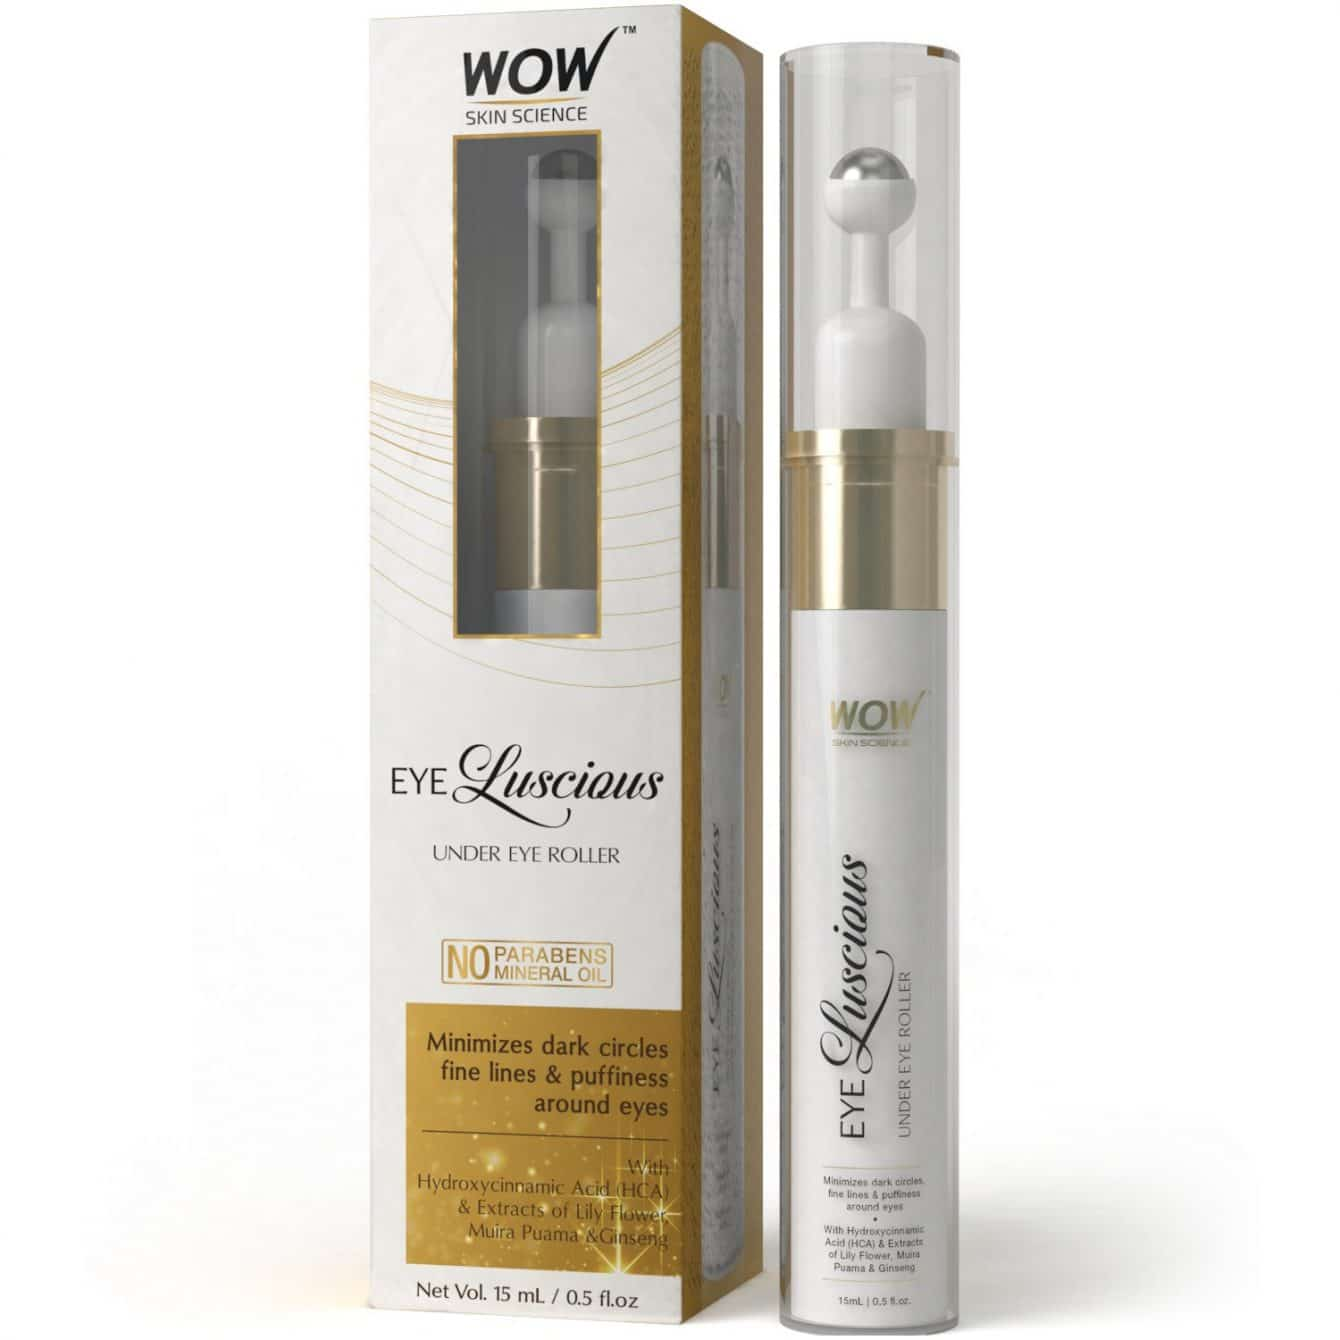 wow under eye roller review